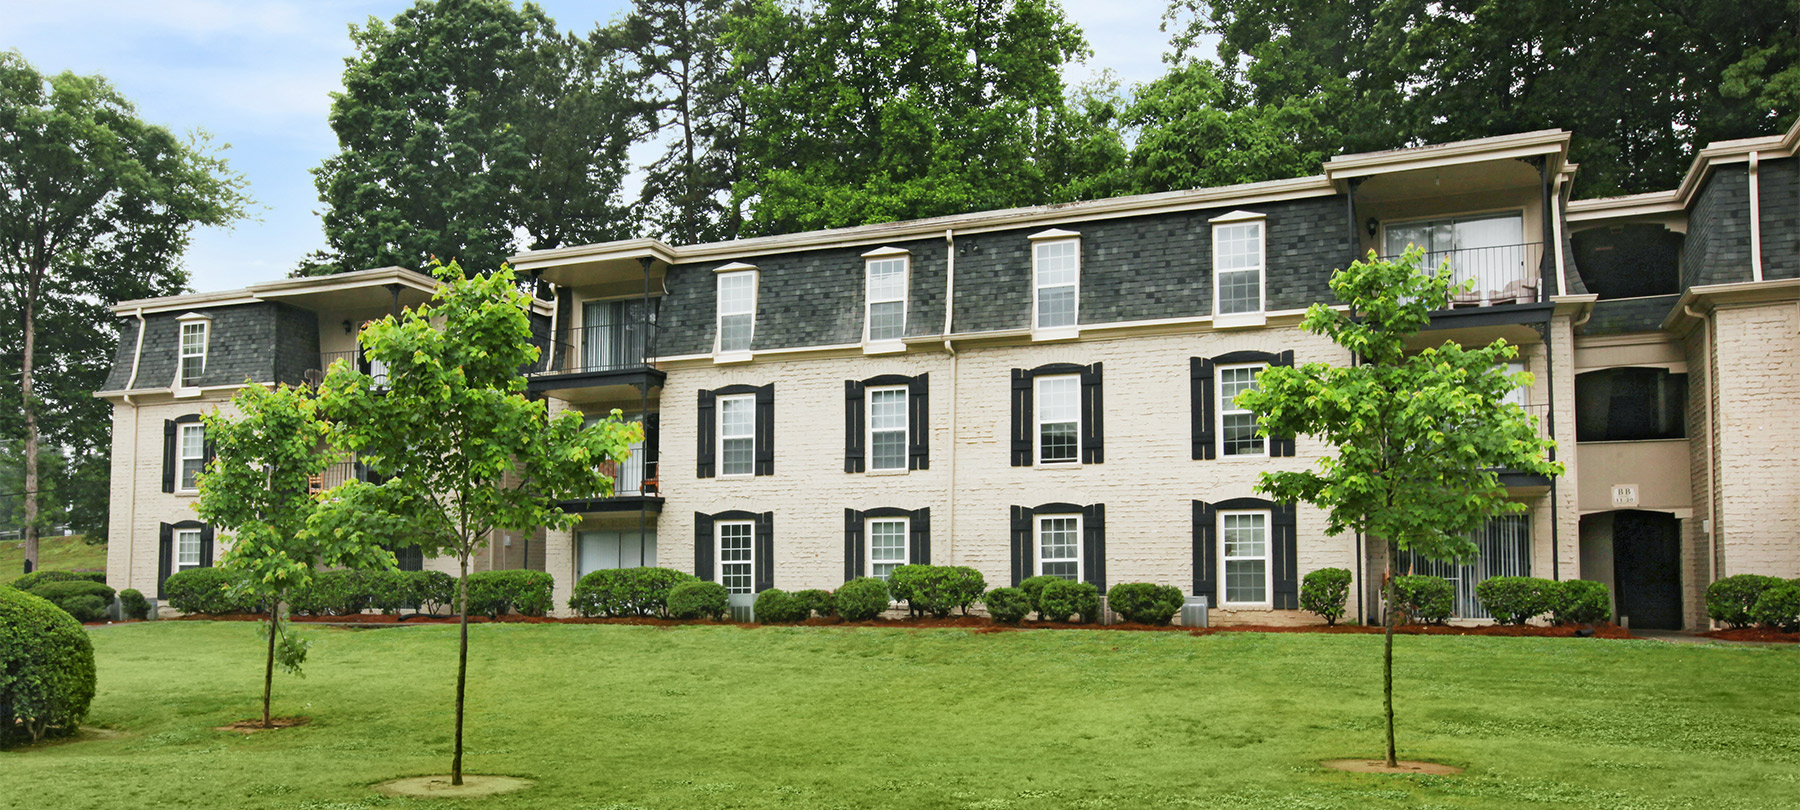 reserve at brookhaven apartment homes in atlanta ga reserve at brookhaven apartment homes